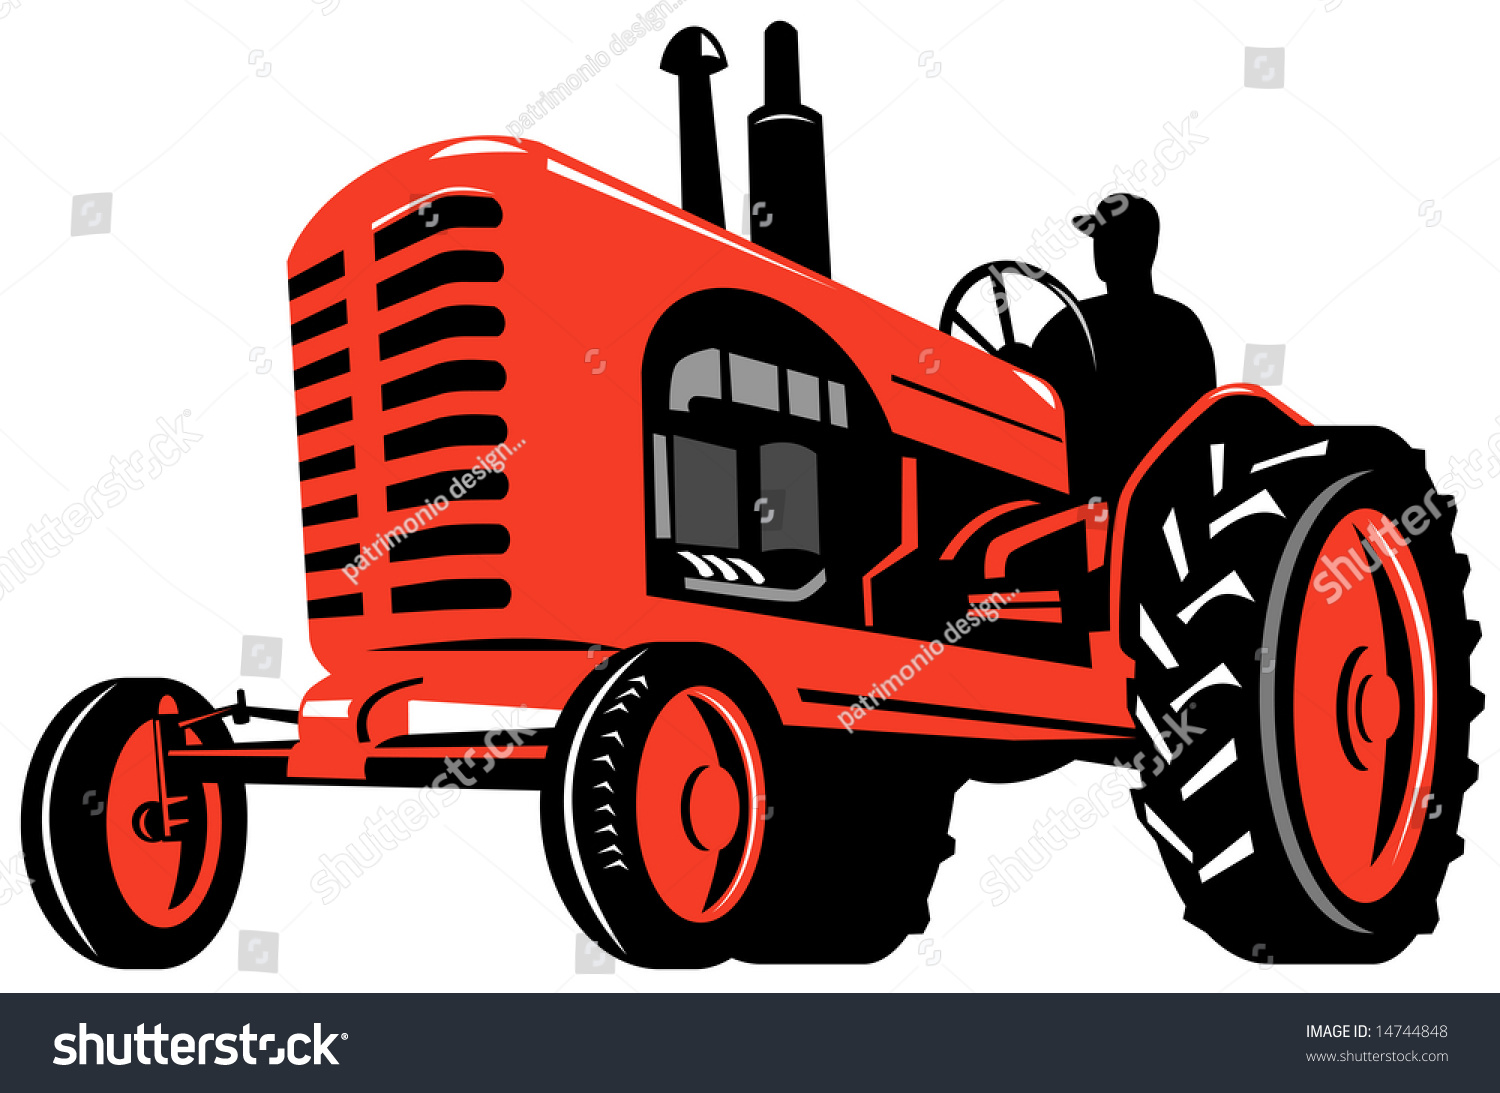 vintage tractor clipart - photo #24